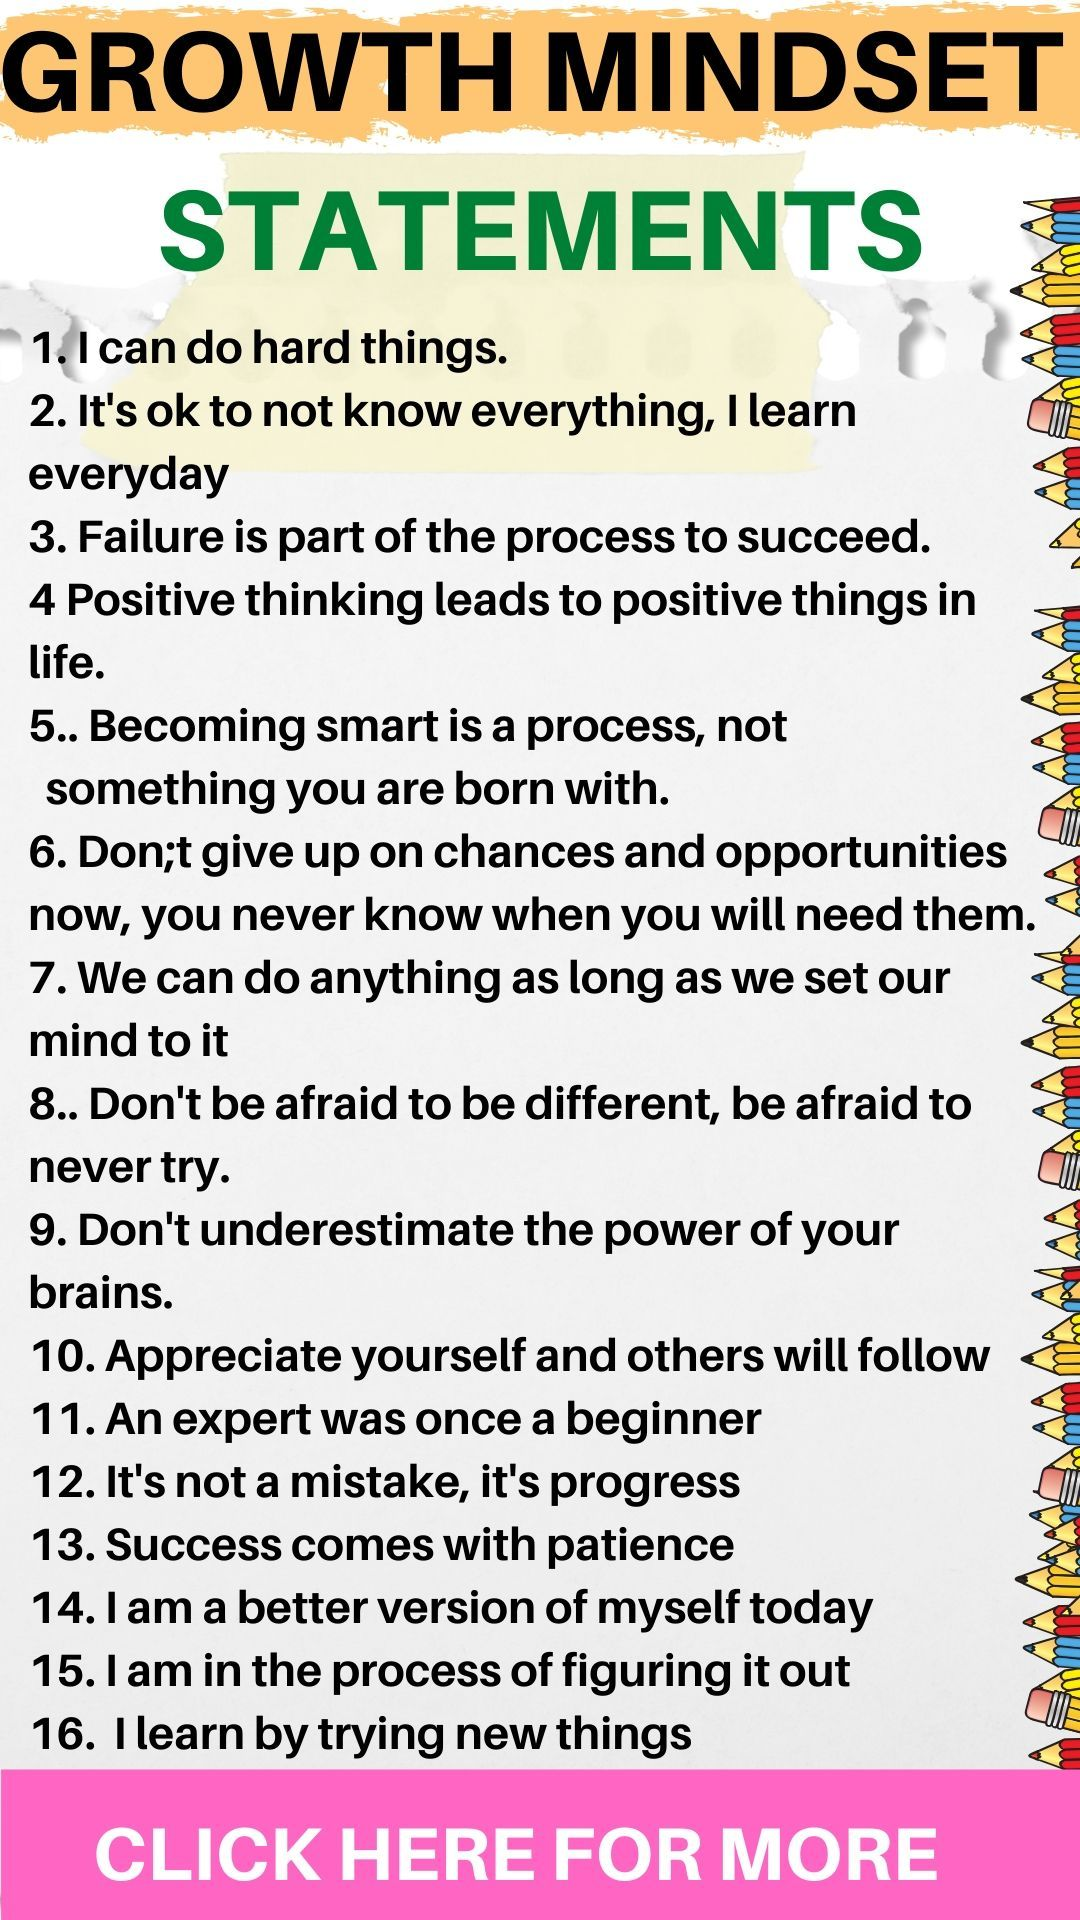 101 Growth Mindset Quotes For Self Belief